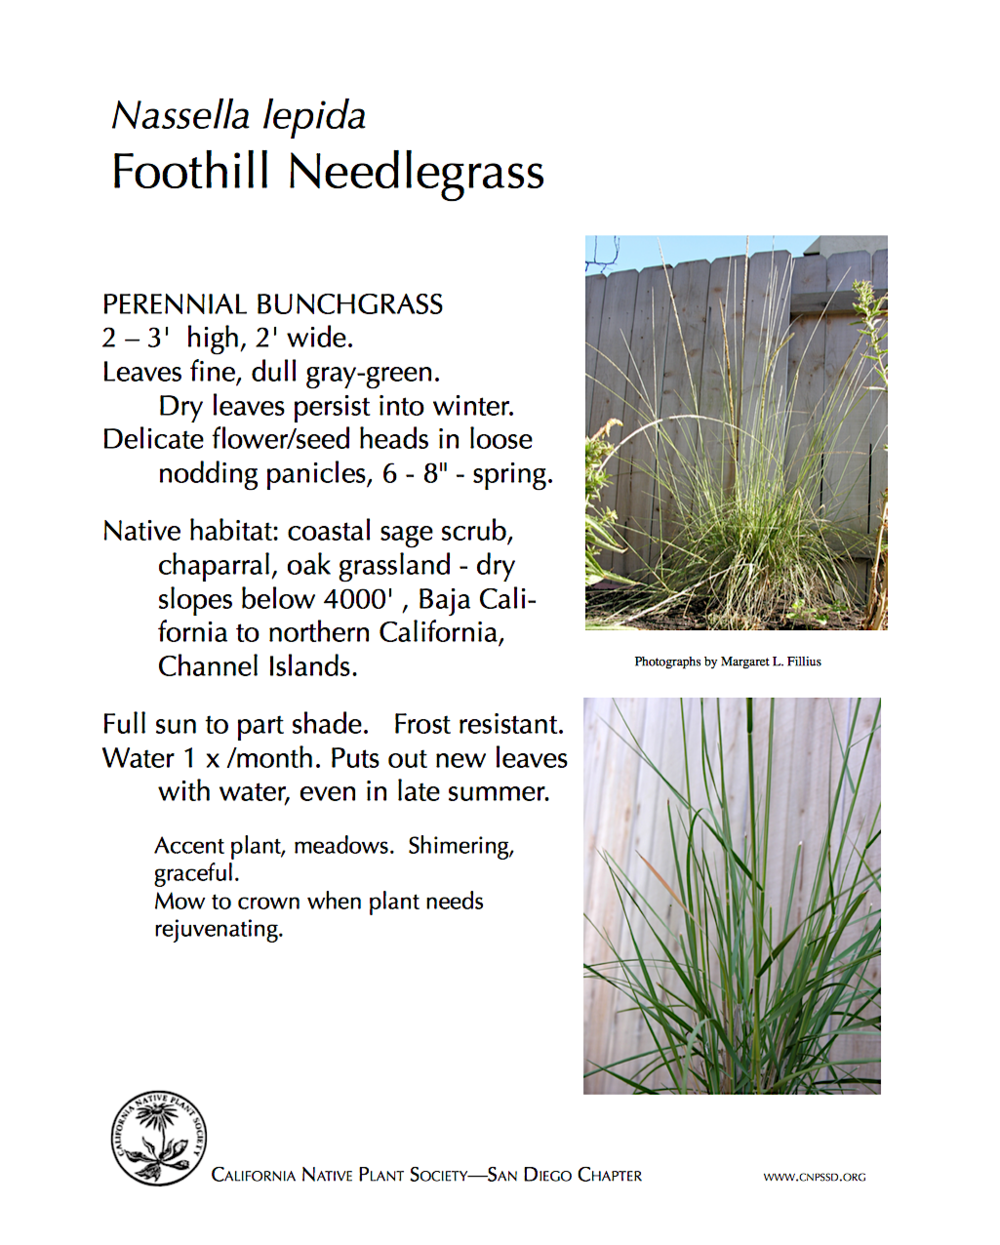 Foothill Needlegrass.jpg.png